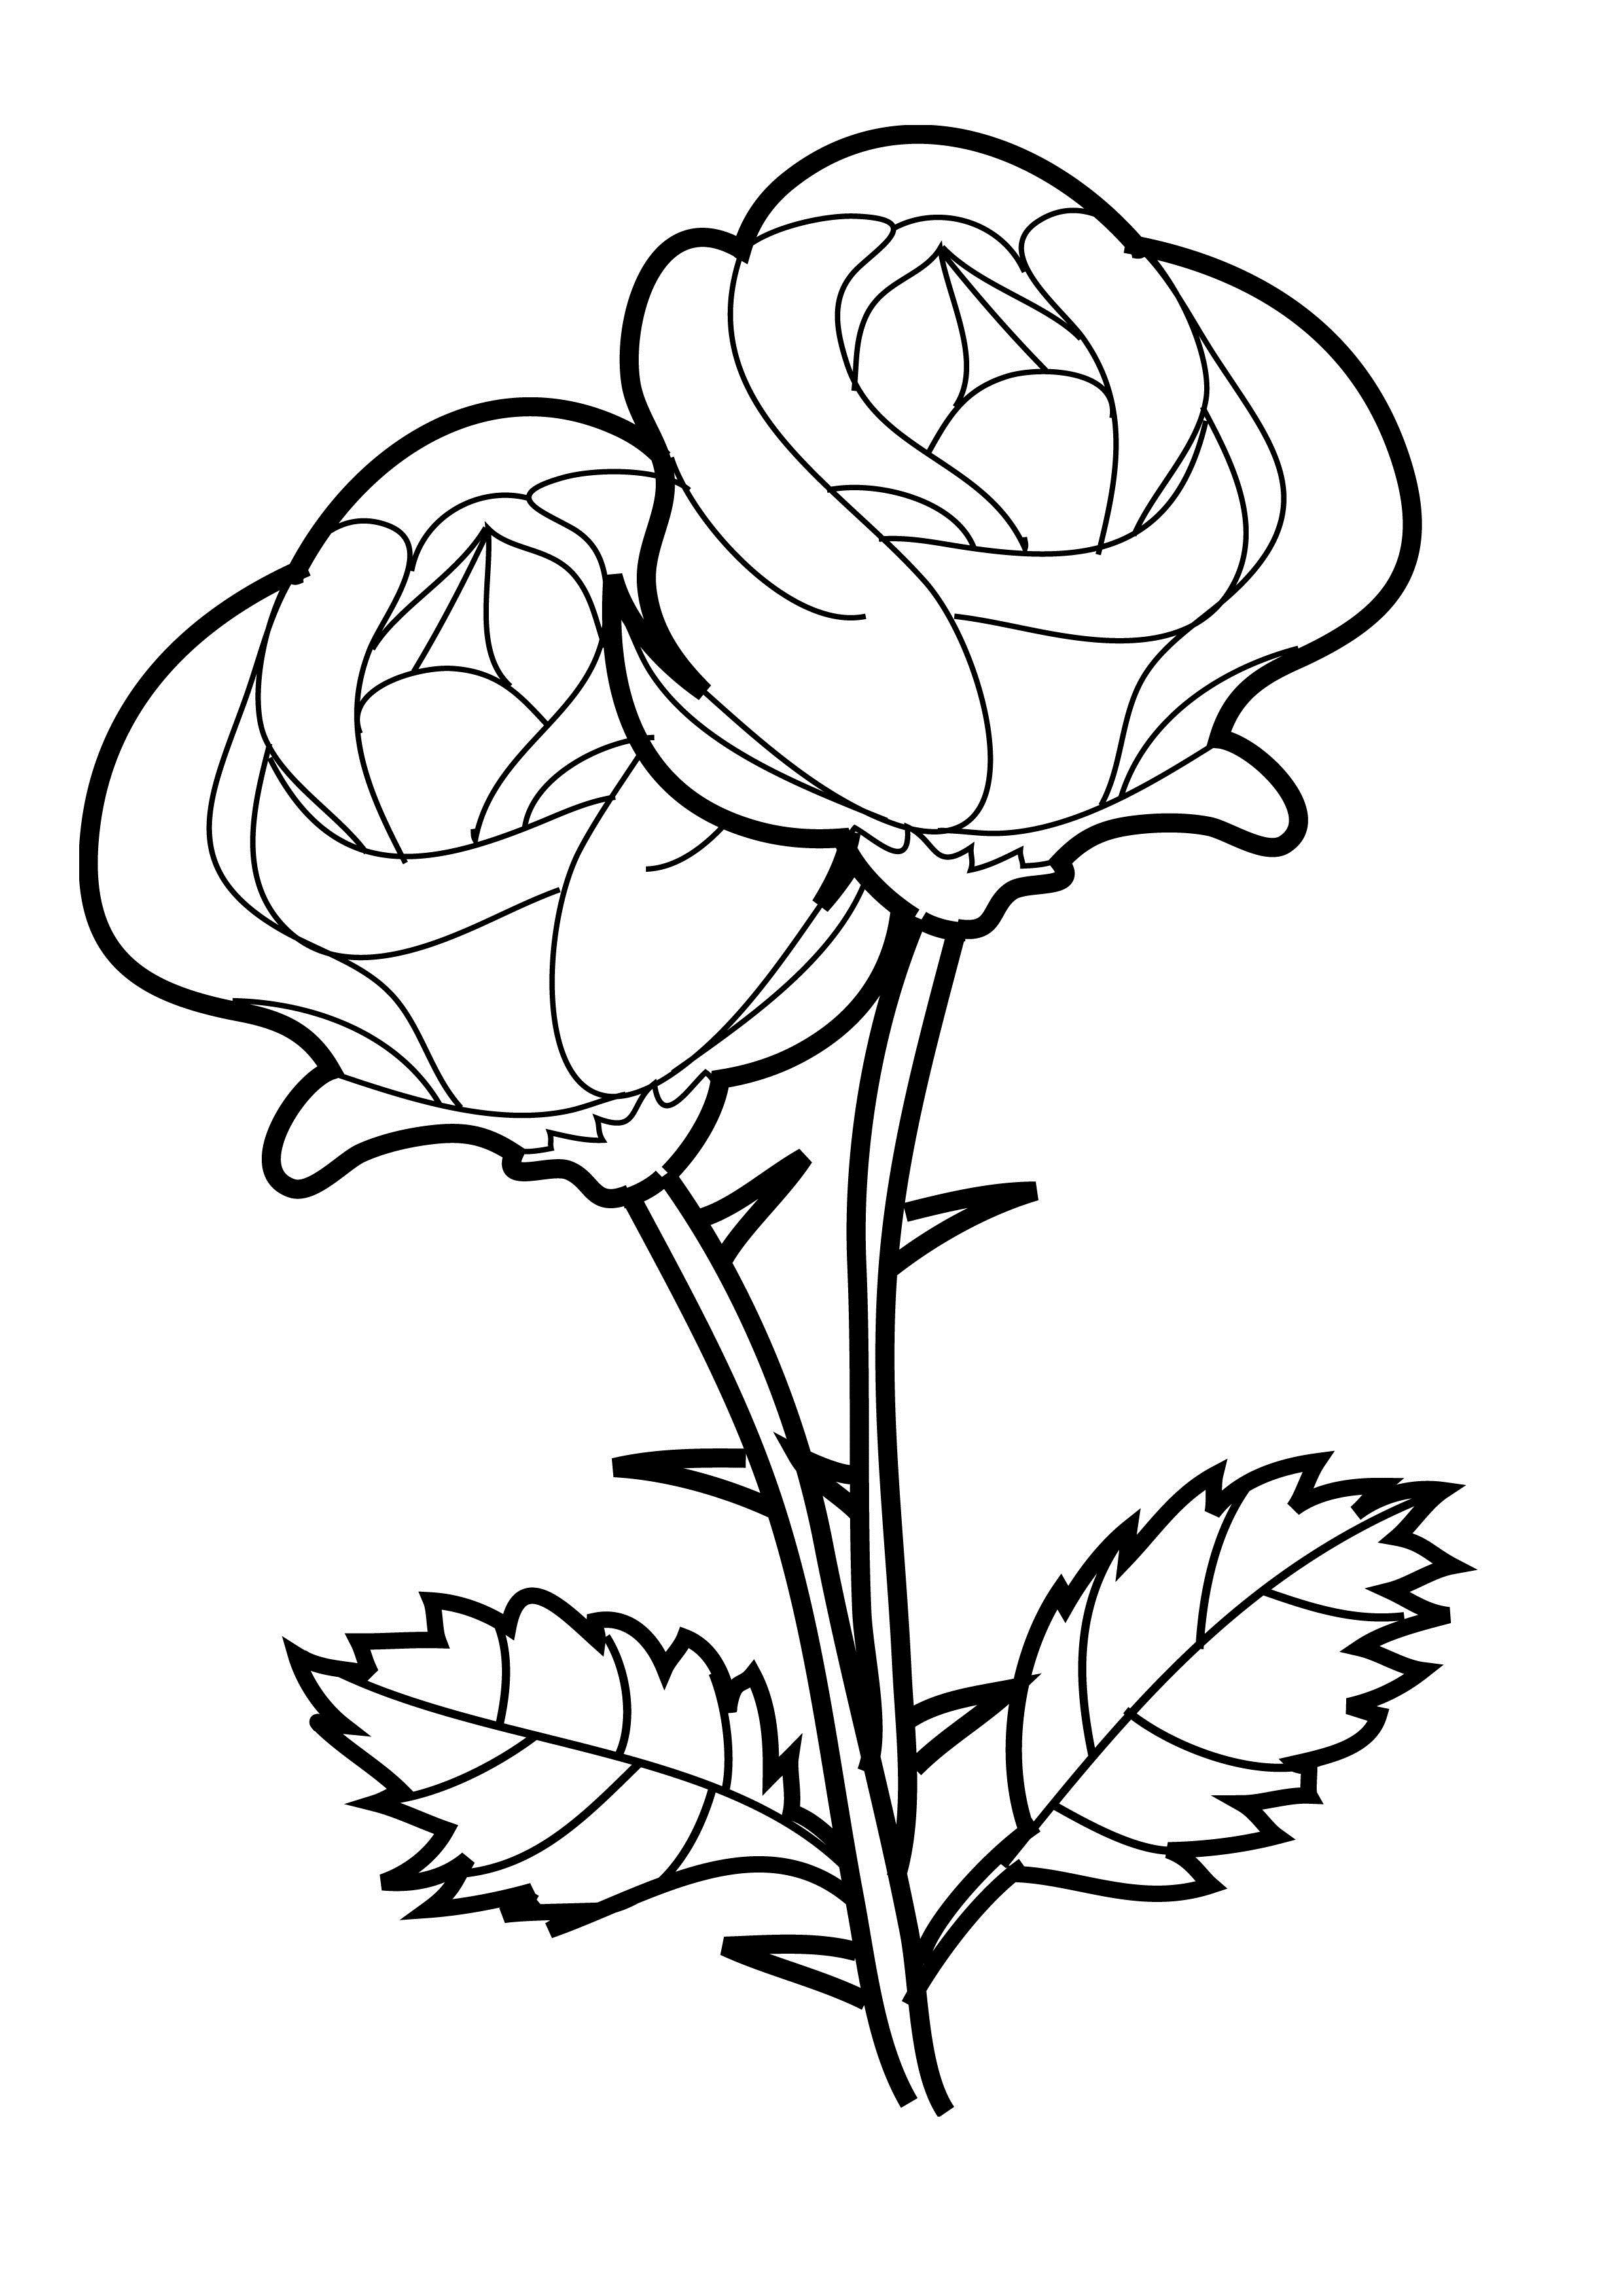 roses coloring pages free printable roses coloring pages for kids roses pages coloring